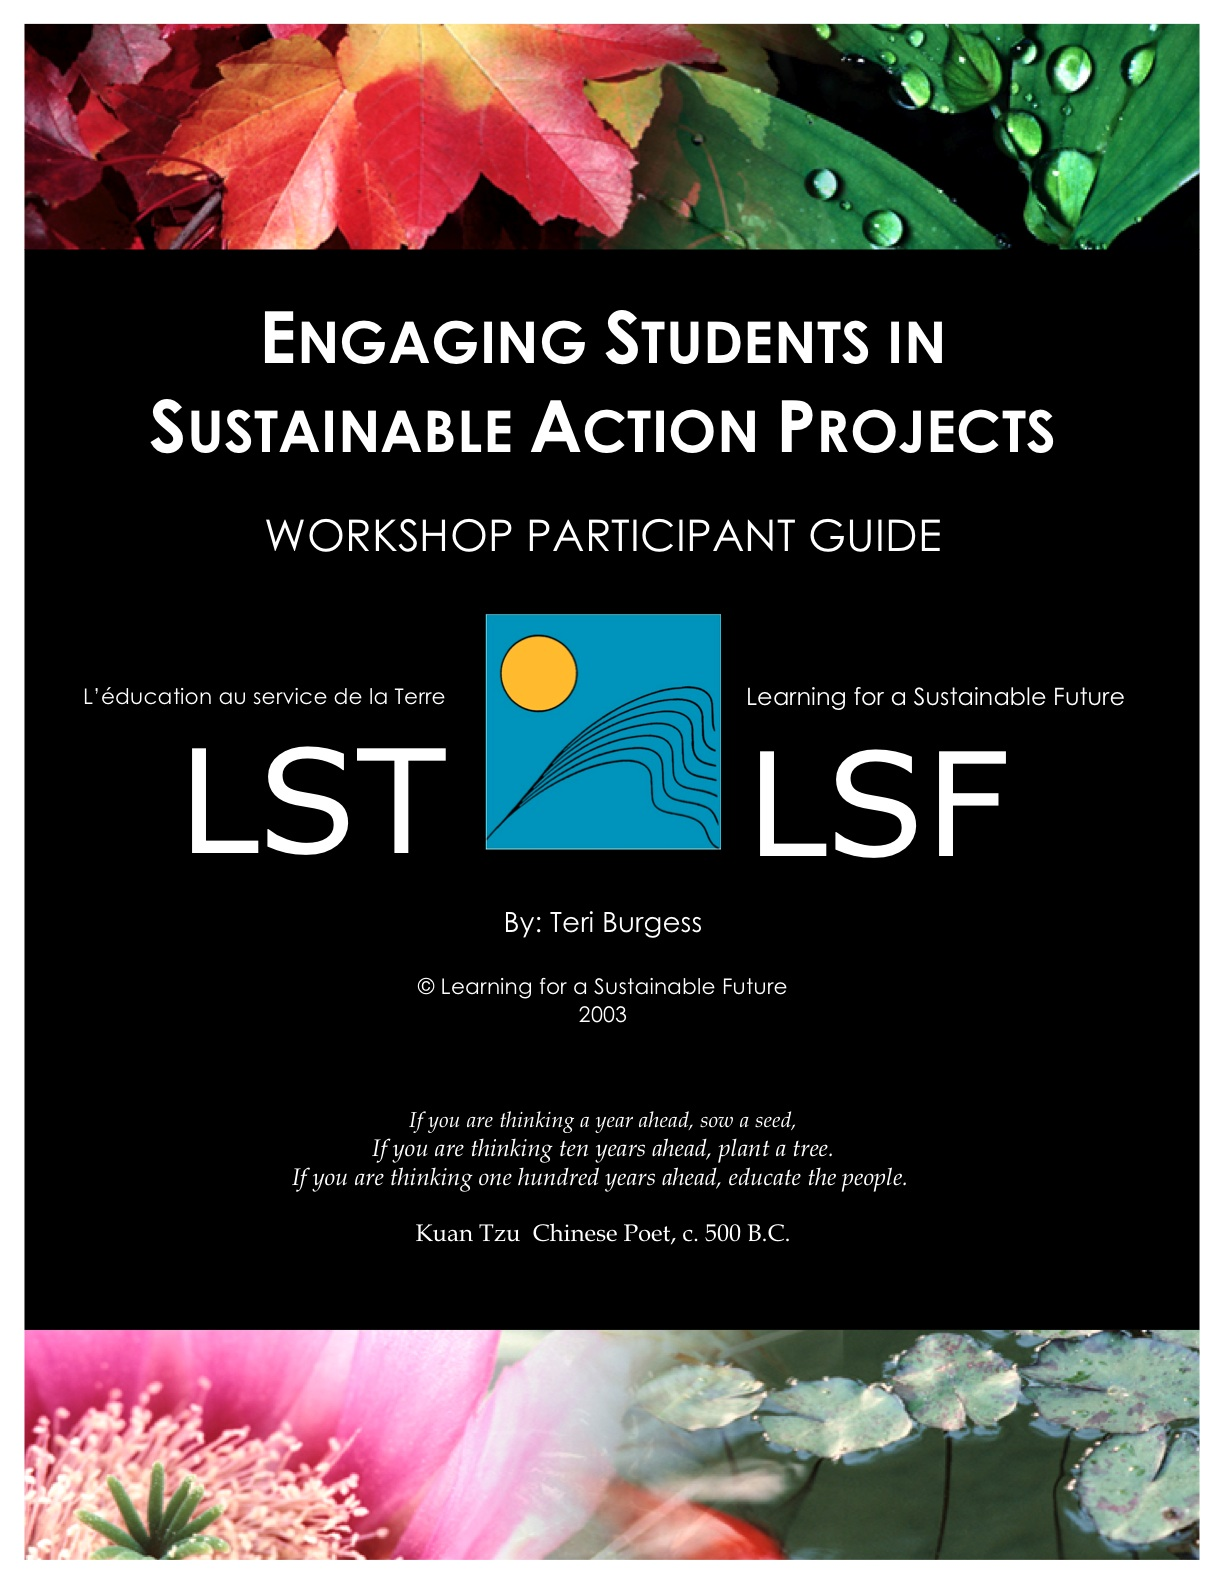 Learning for a Sustainable Future » Engaging Students in ...